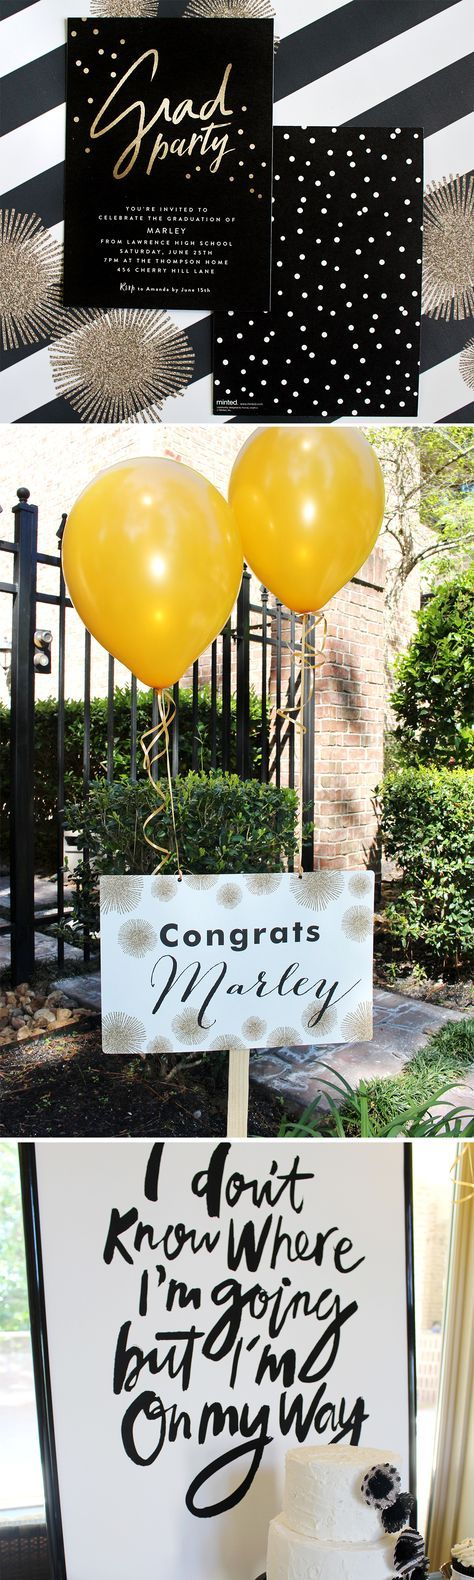 Stylish Graduation Party ideas! Love this for High School or College Graduation Parties!